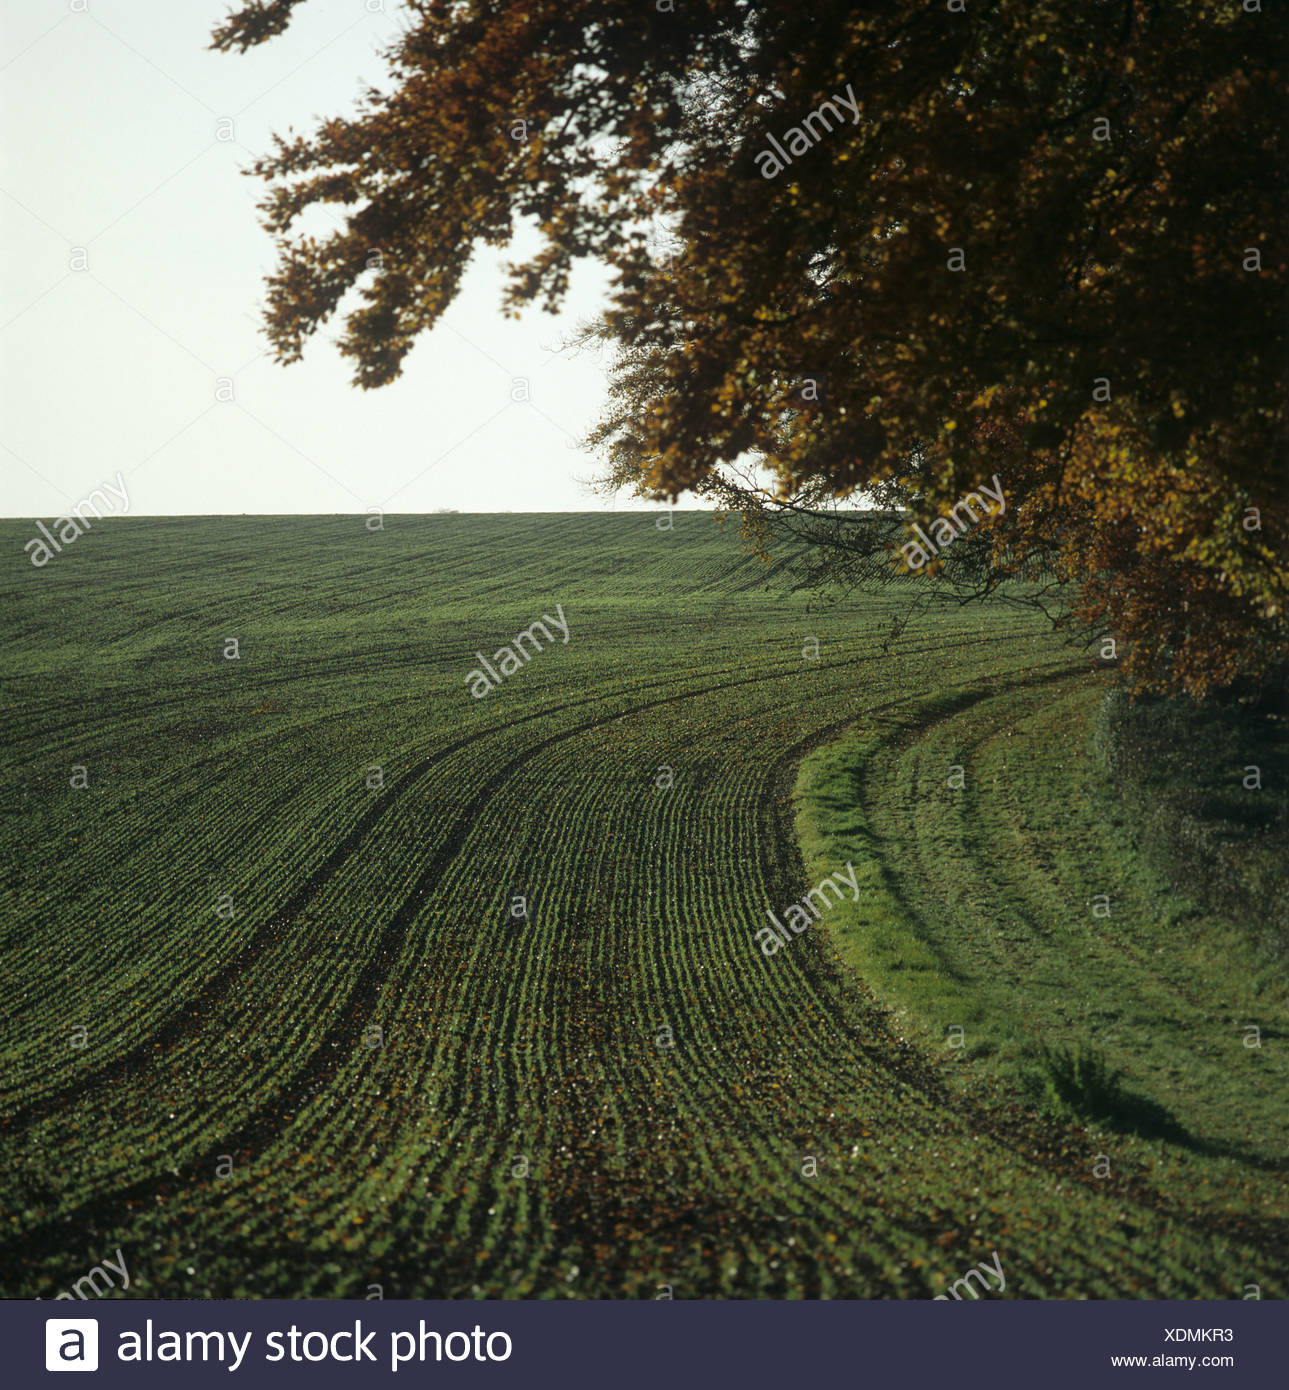 Headland beech tree and drill rows of young seedling wheat in autumn Hampshire - Stock Image